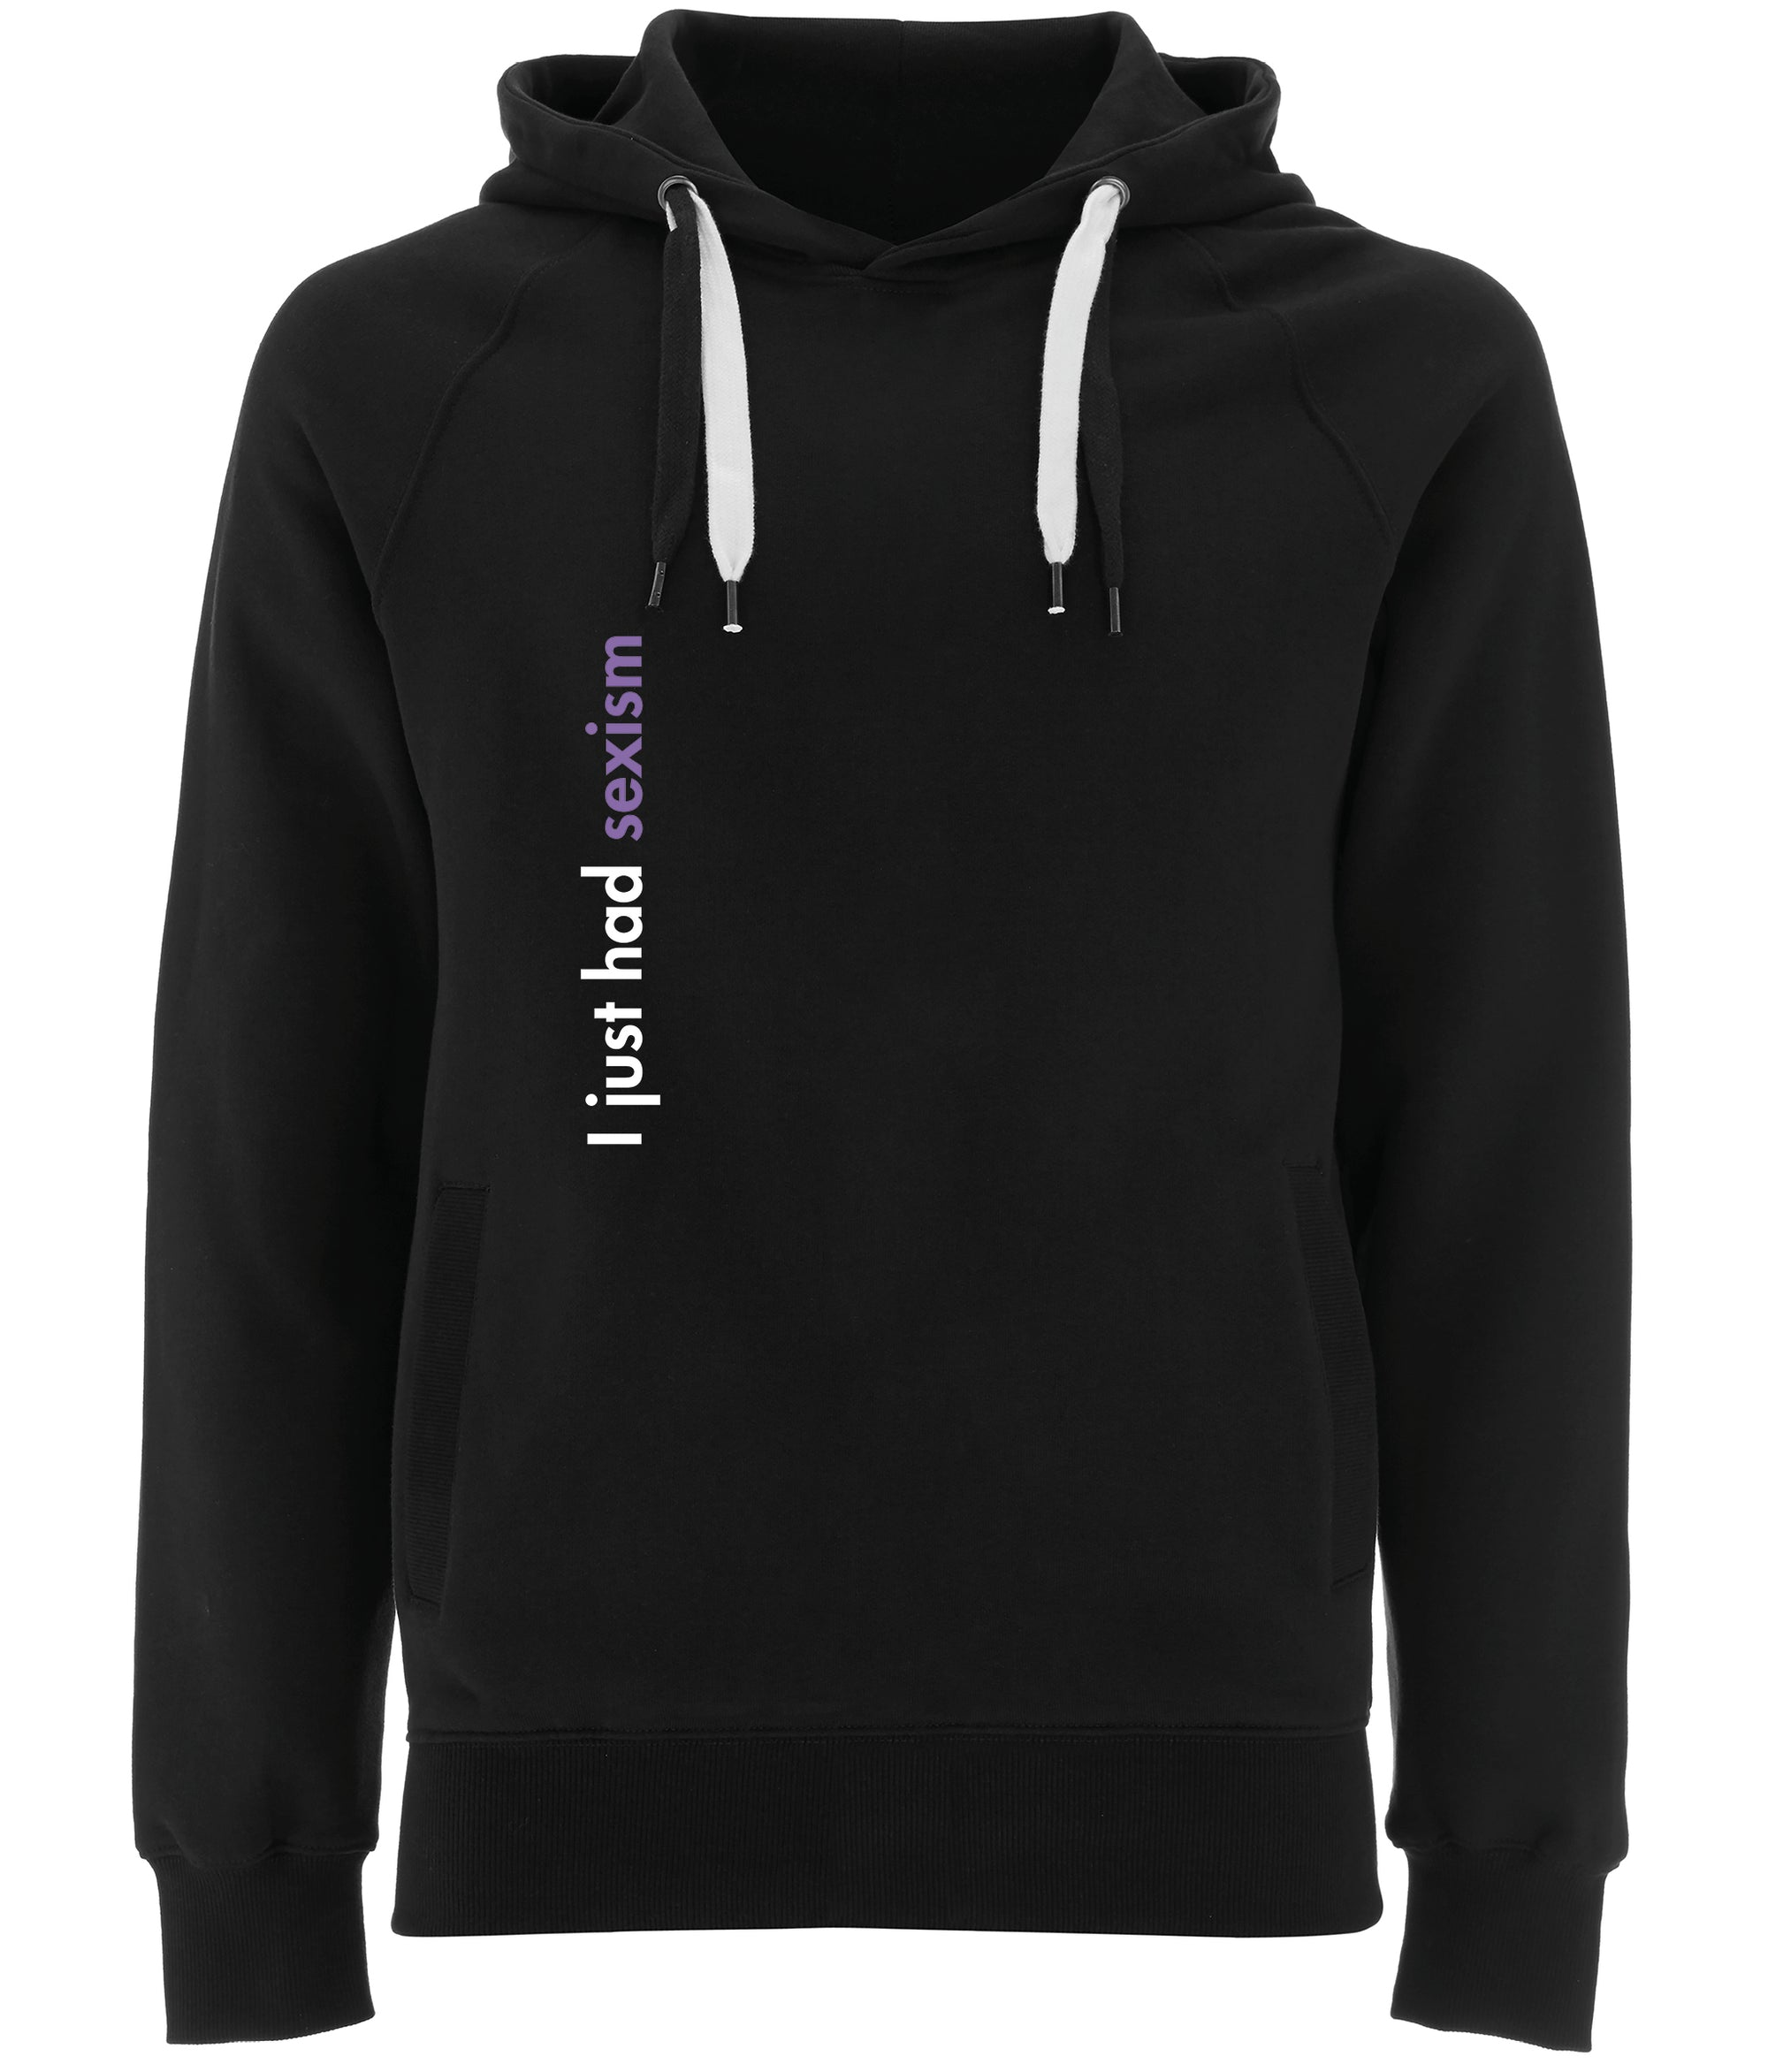 I Just Had Sexism Organic Combed Cotton Hoodie Black